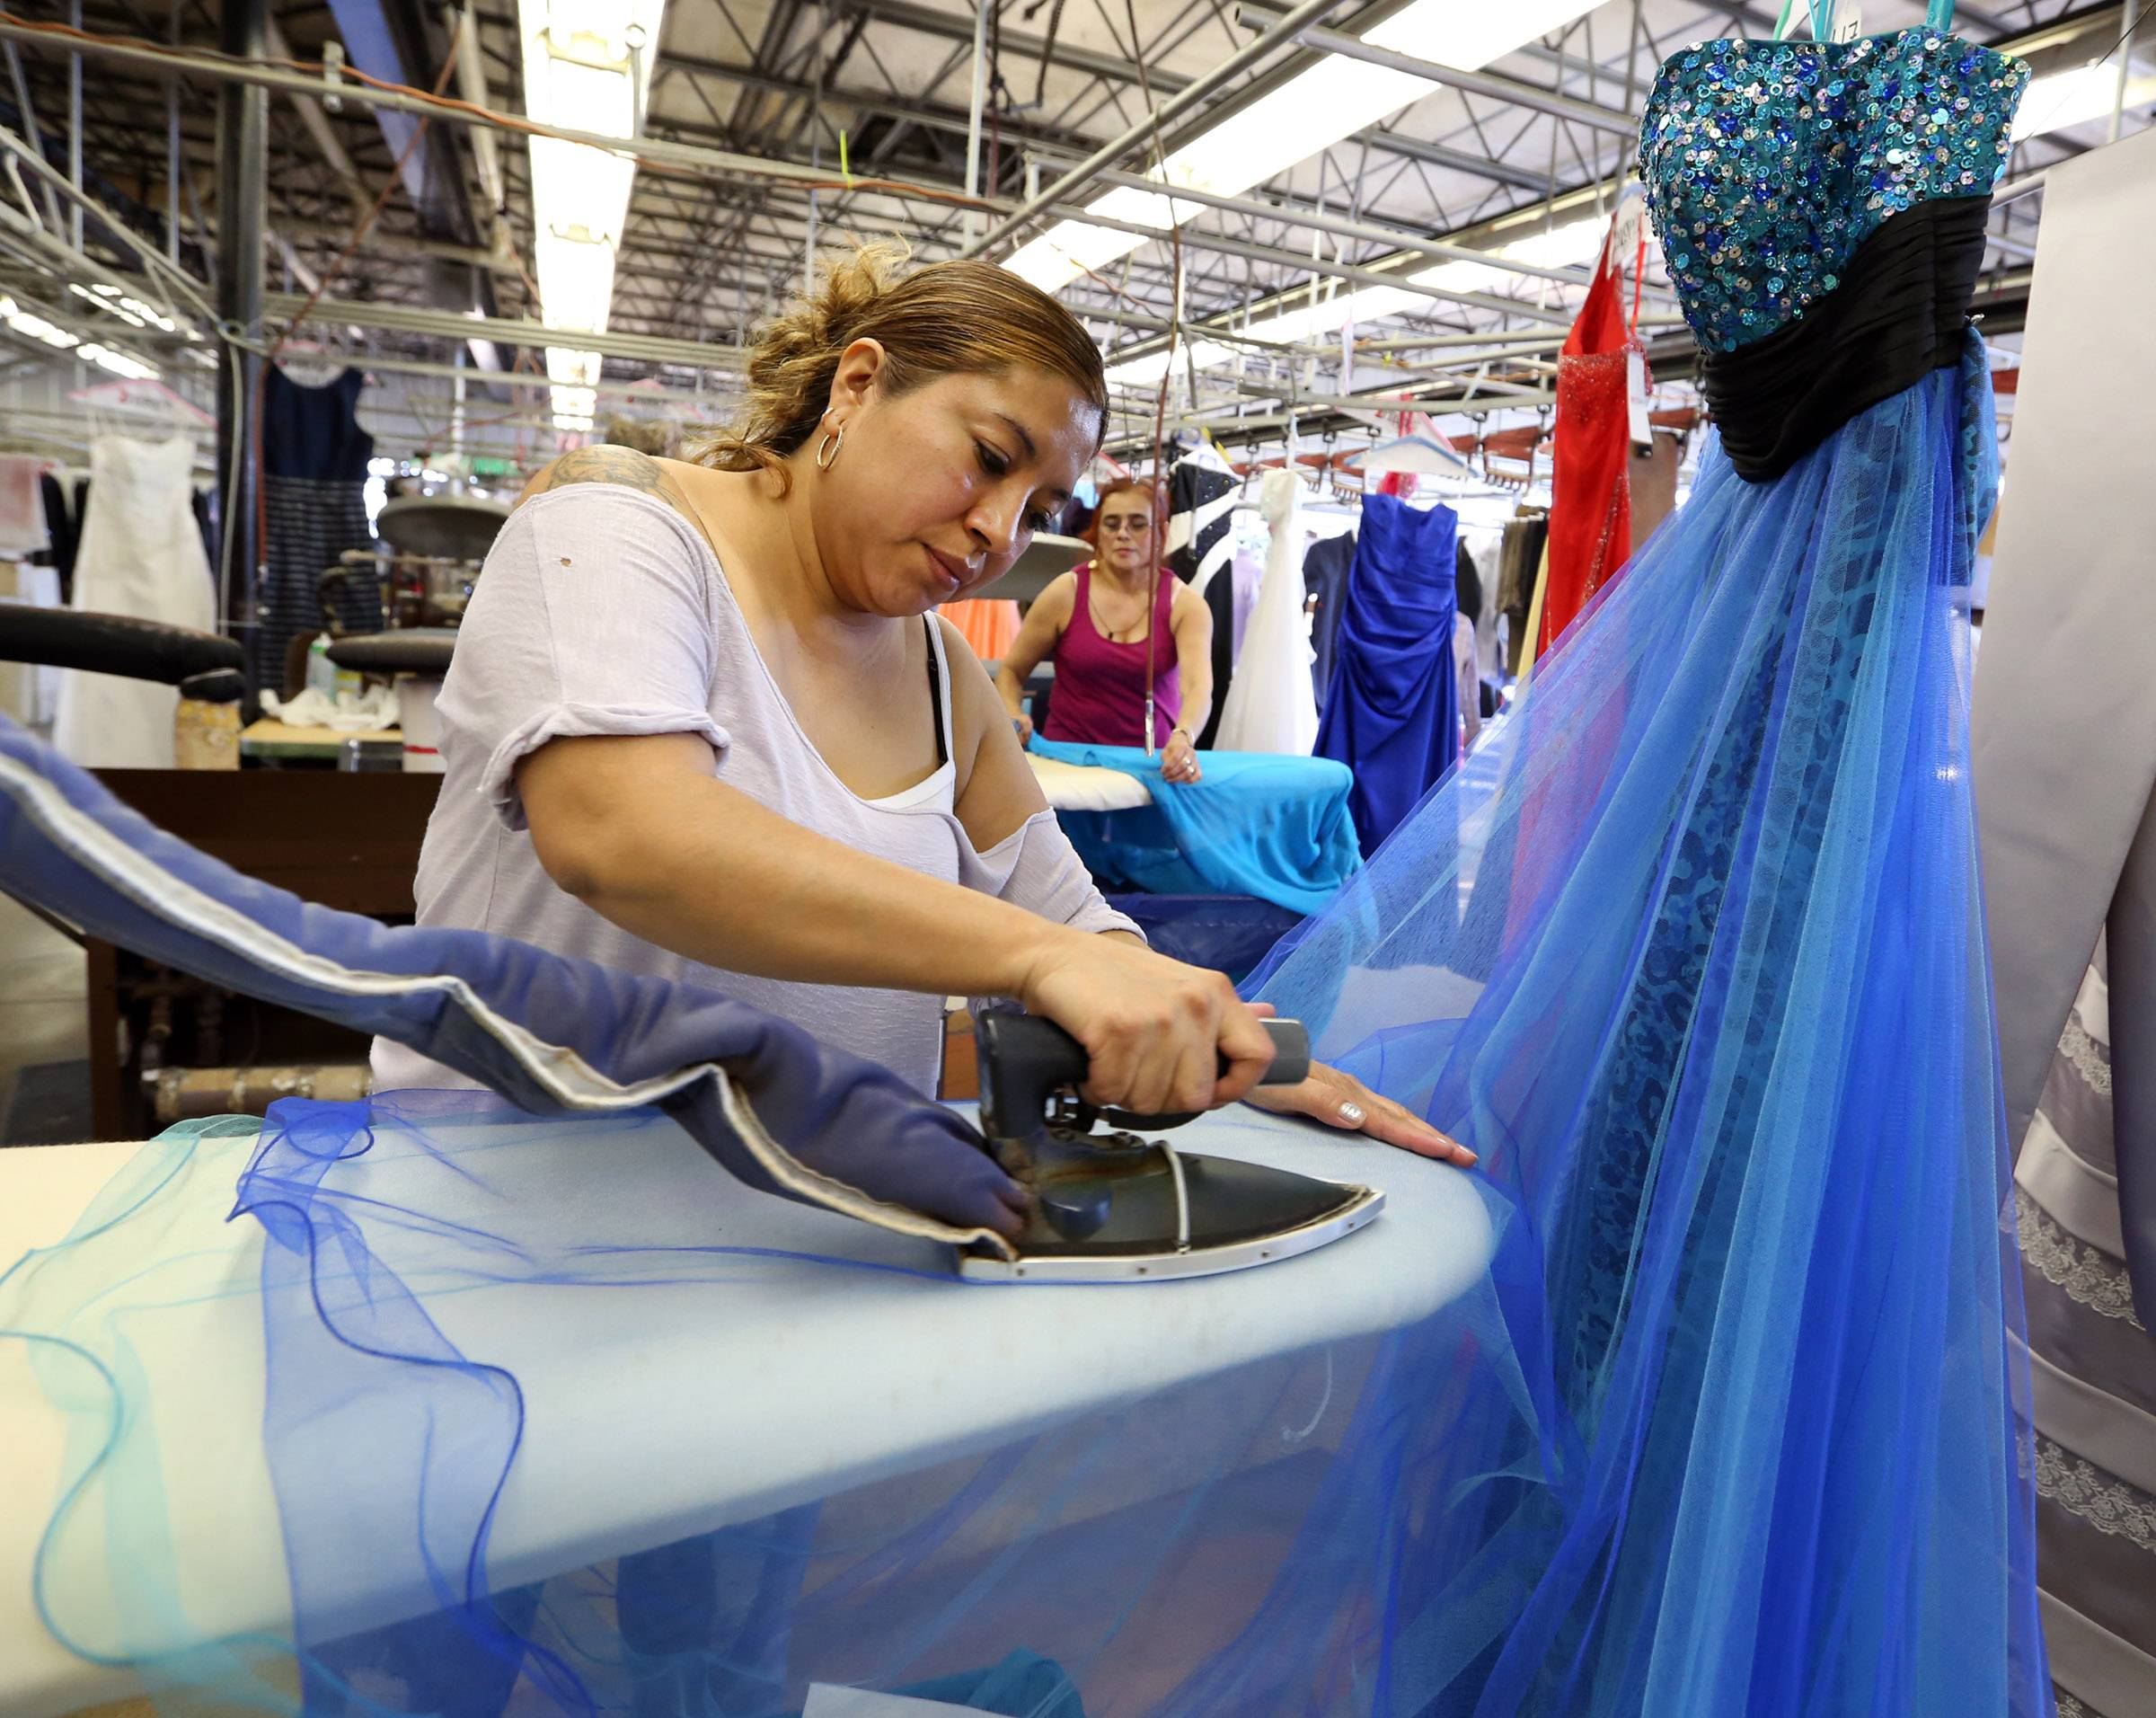 Maria Marroquin steam irons prom dresses at Zengeler Cleaners with Antonia Chavez, background right, ironing other dresses on Saturday in Northbrook. The dresses are being delivered to Chicago for girls from needy families as part of the Glass Slipper Project.